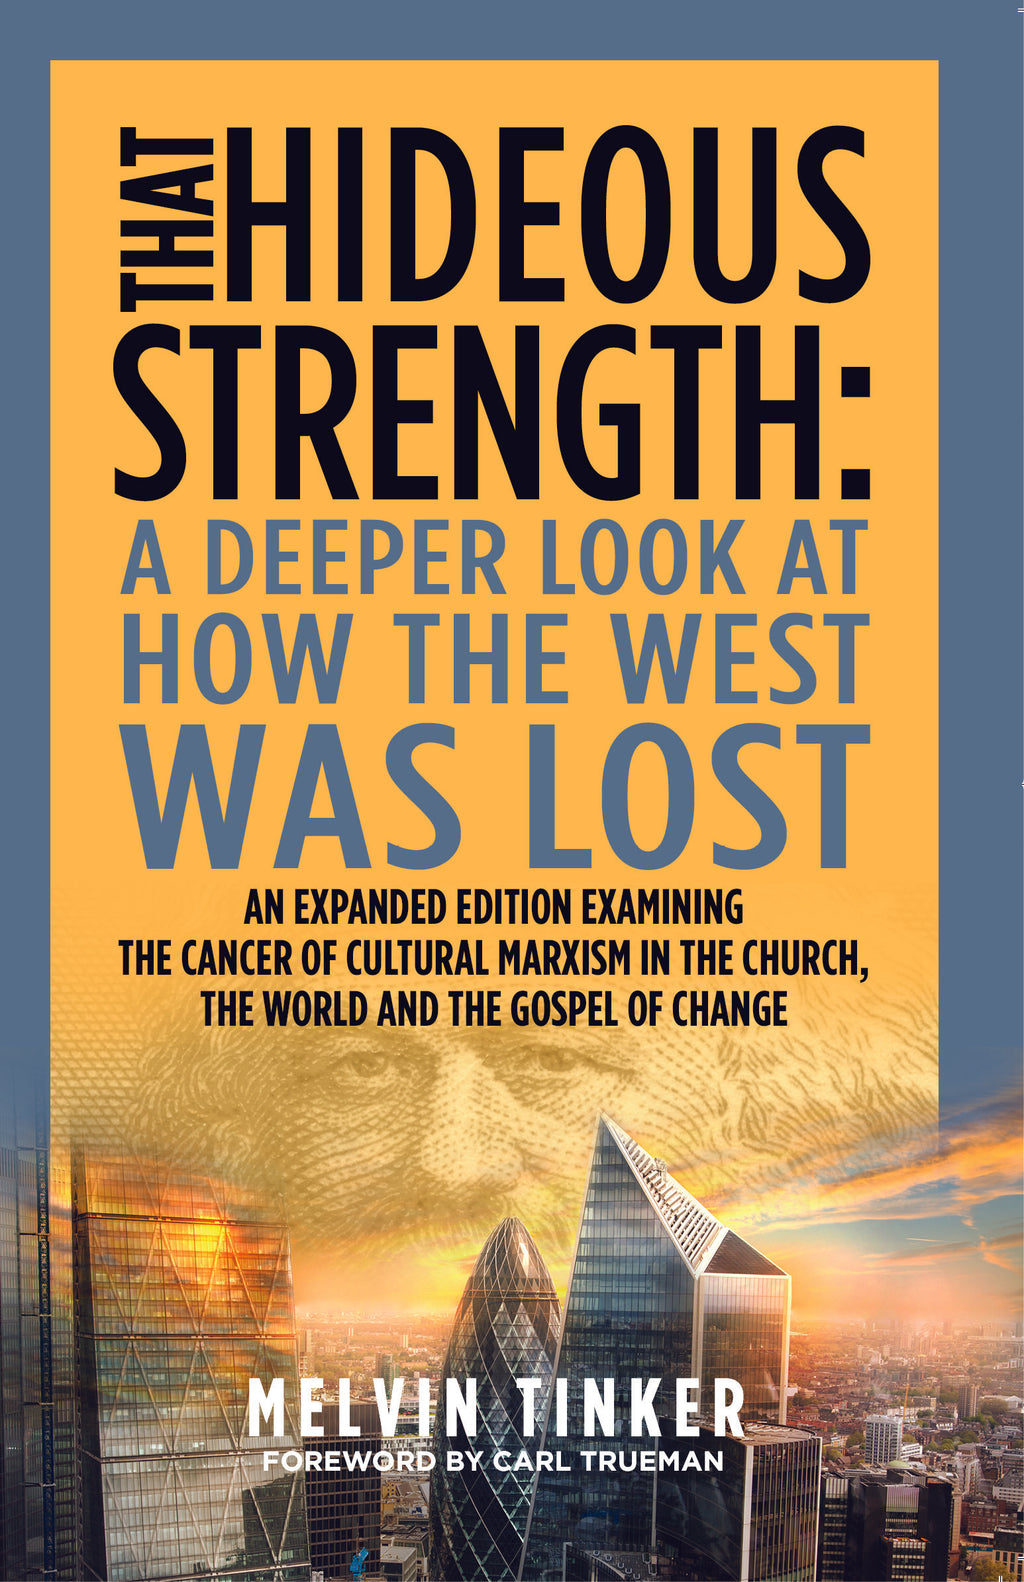 That Hideous Strength: A Deeper Look at How the West Was Won